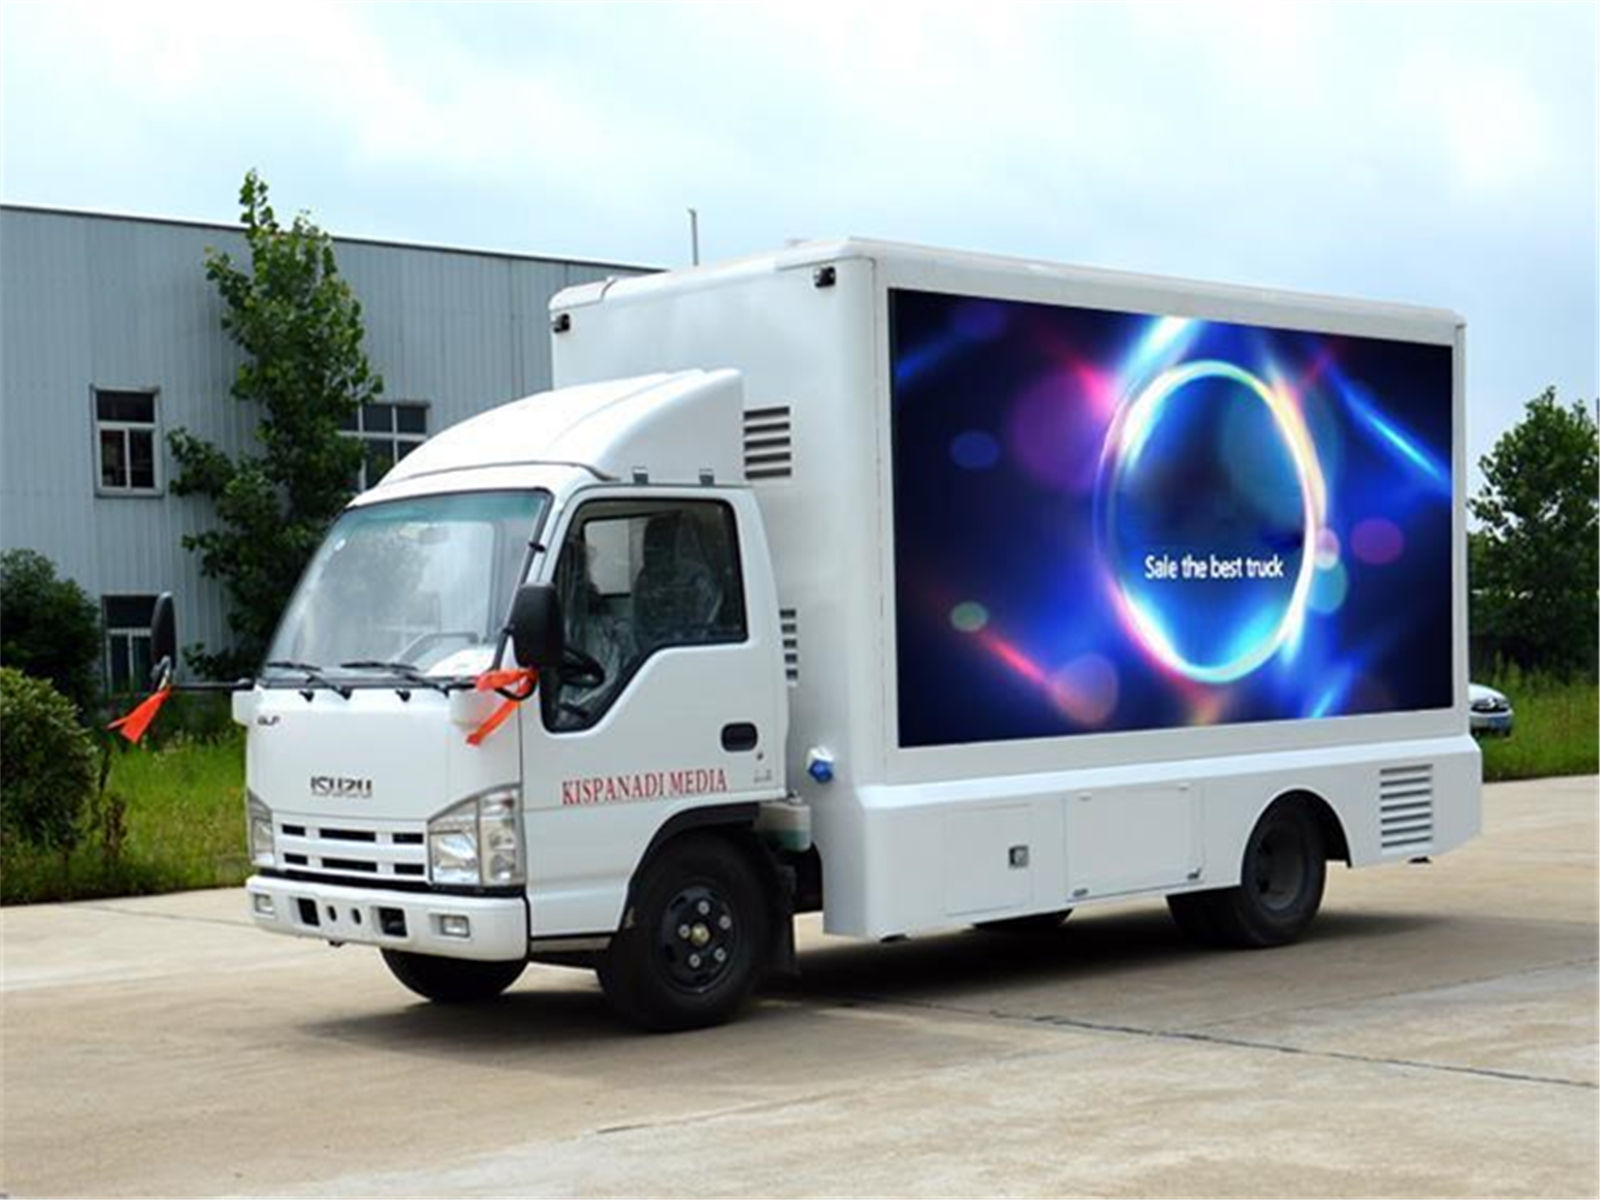 ISUZU 4x2 outdoor LED panel Advertising Display Truck